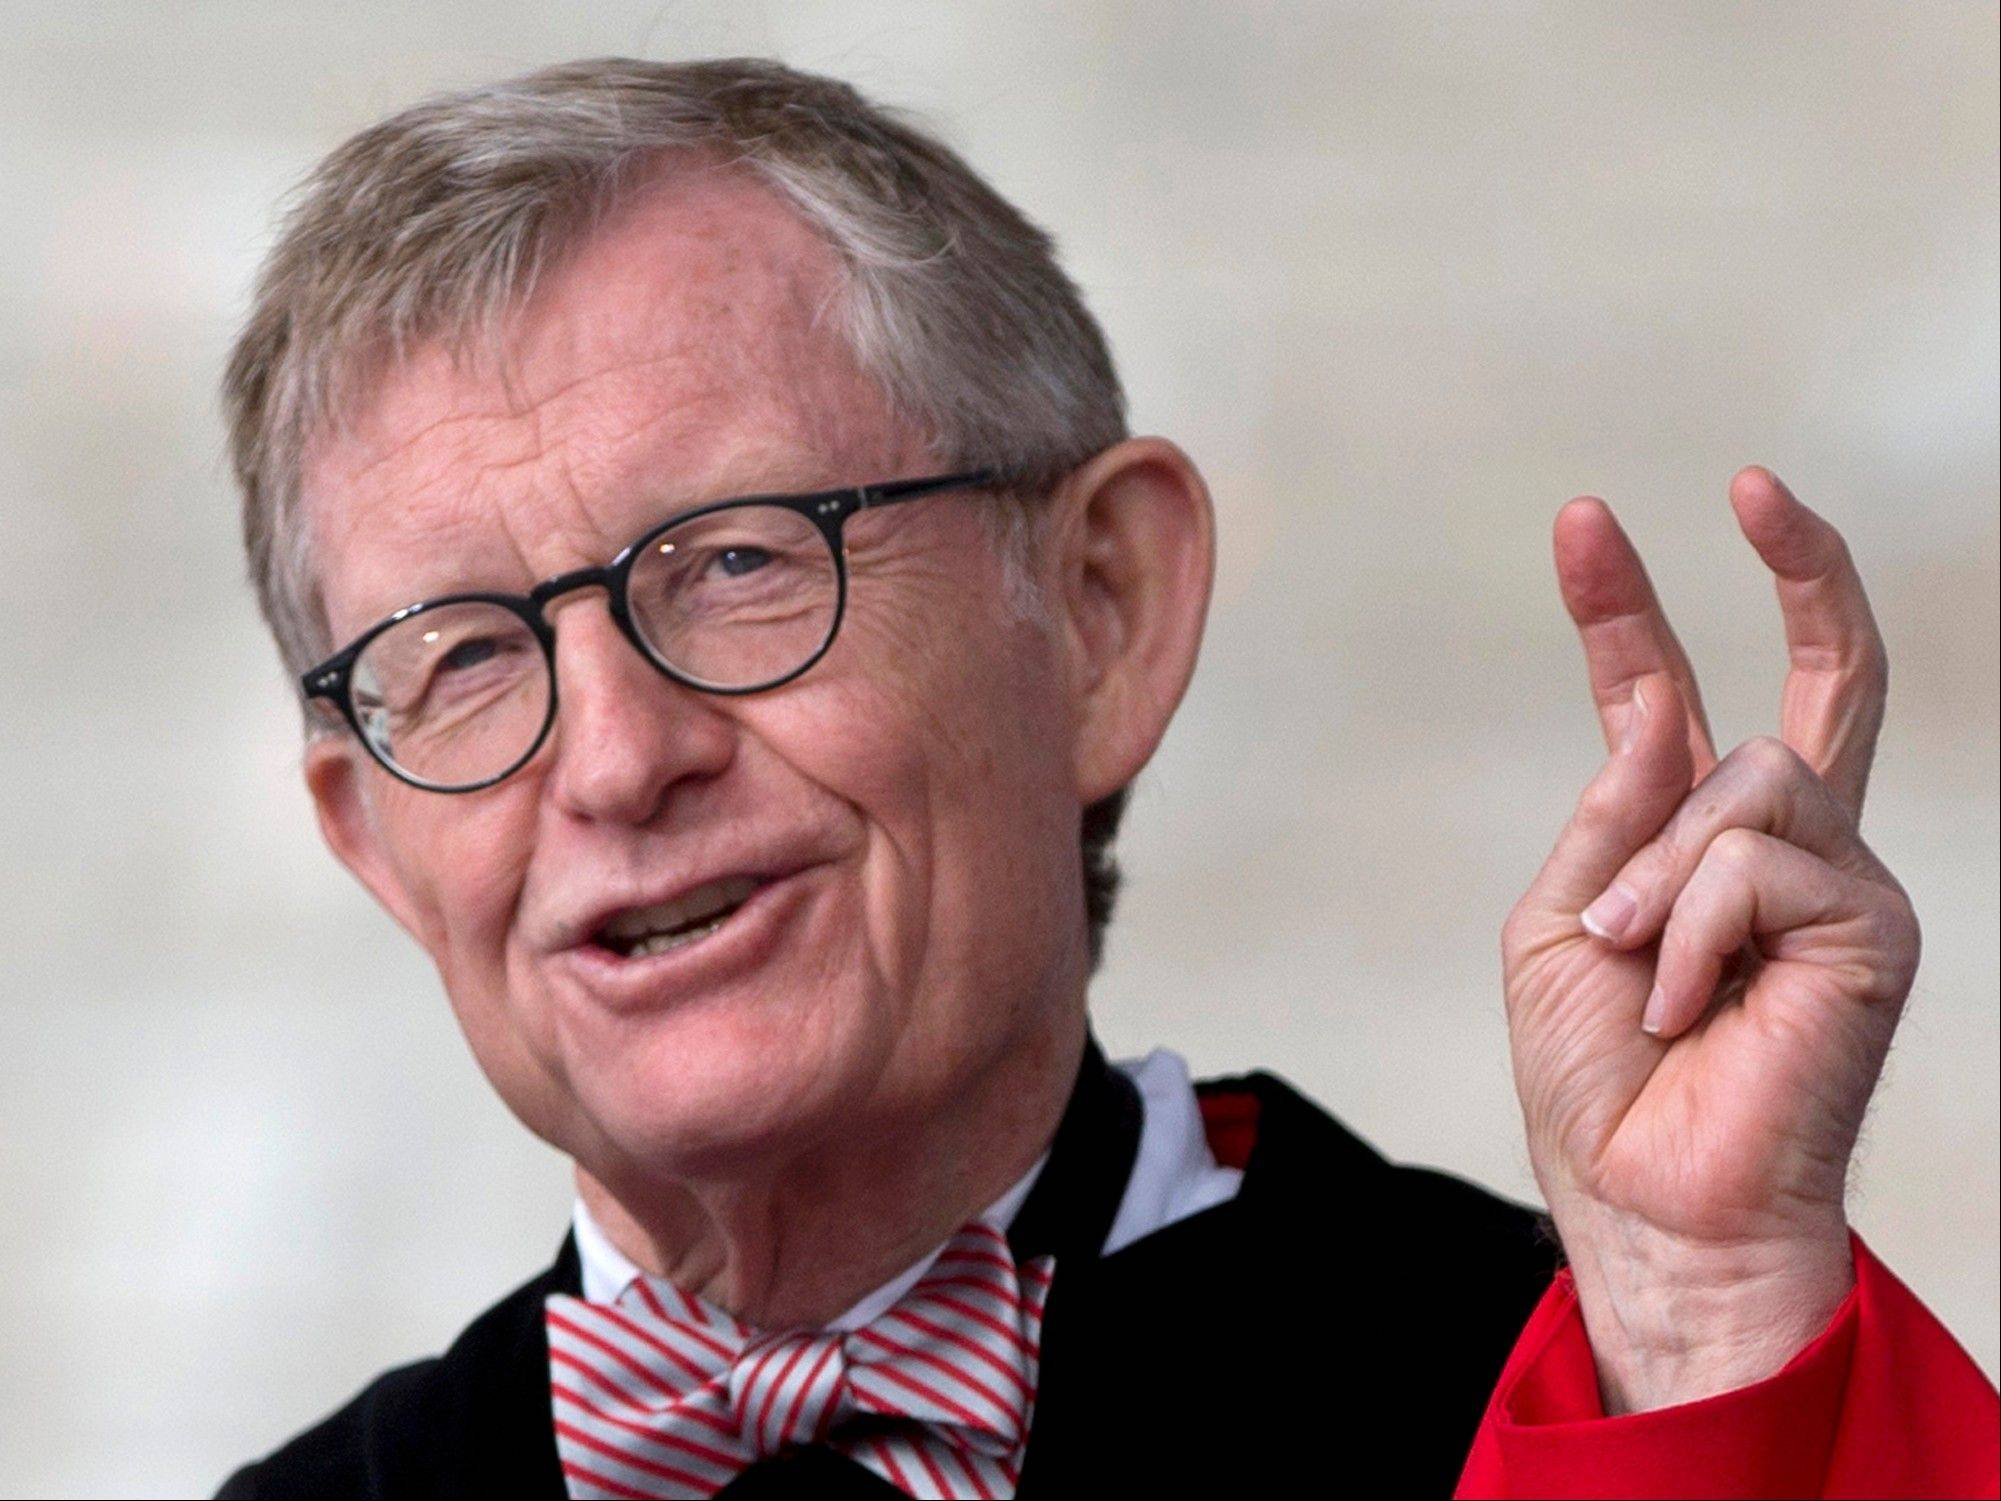 Ohio State president E. Gordon Gee told a university committee last December that Notre Dame wasn�t invited to join the Big Ten because they�re not good partners while also jokingly saying that �those damn Catholics� can�t be trusted.